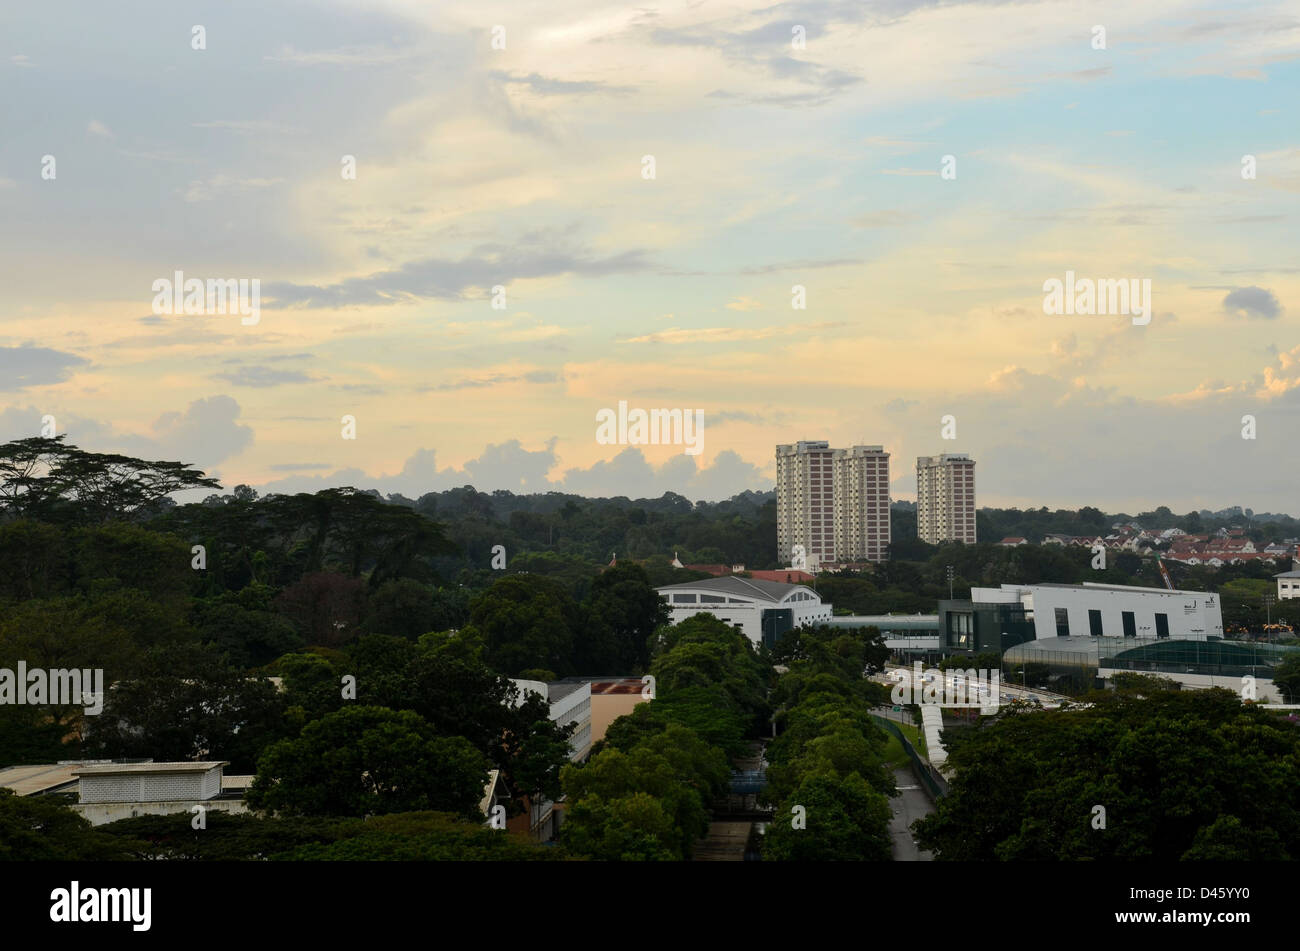 Central Singapore building skyline - Stock Image